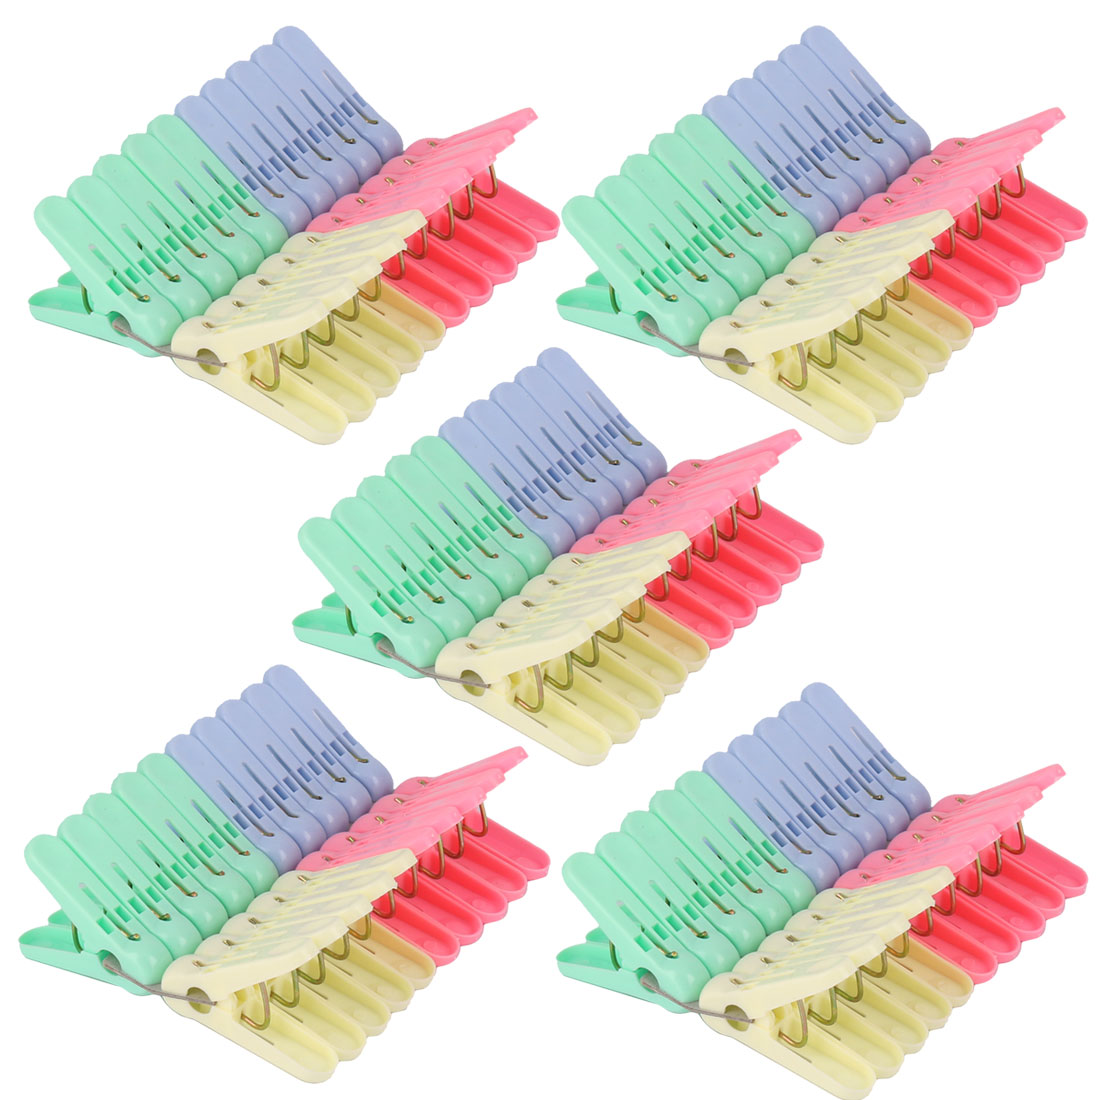 Family Laundry Socks Clothes Drying Clamp Hanging Peg Clip Clothespins 100pcs